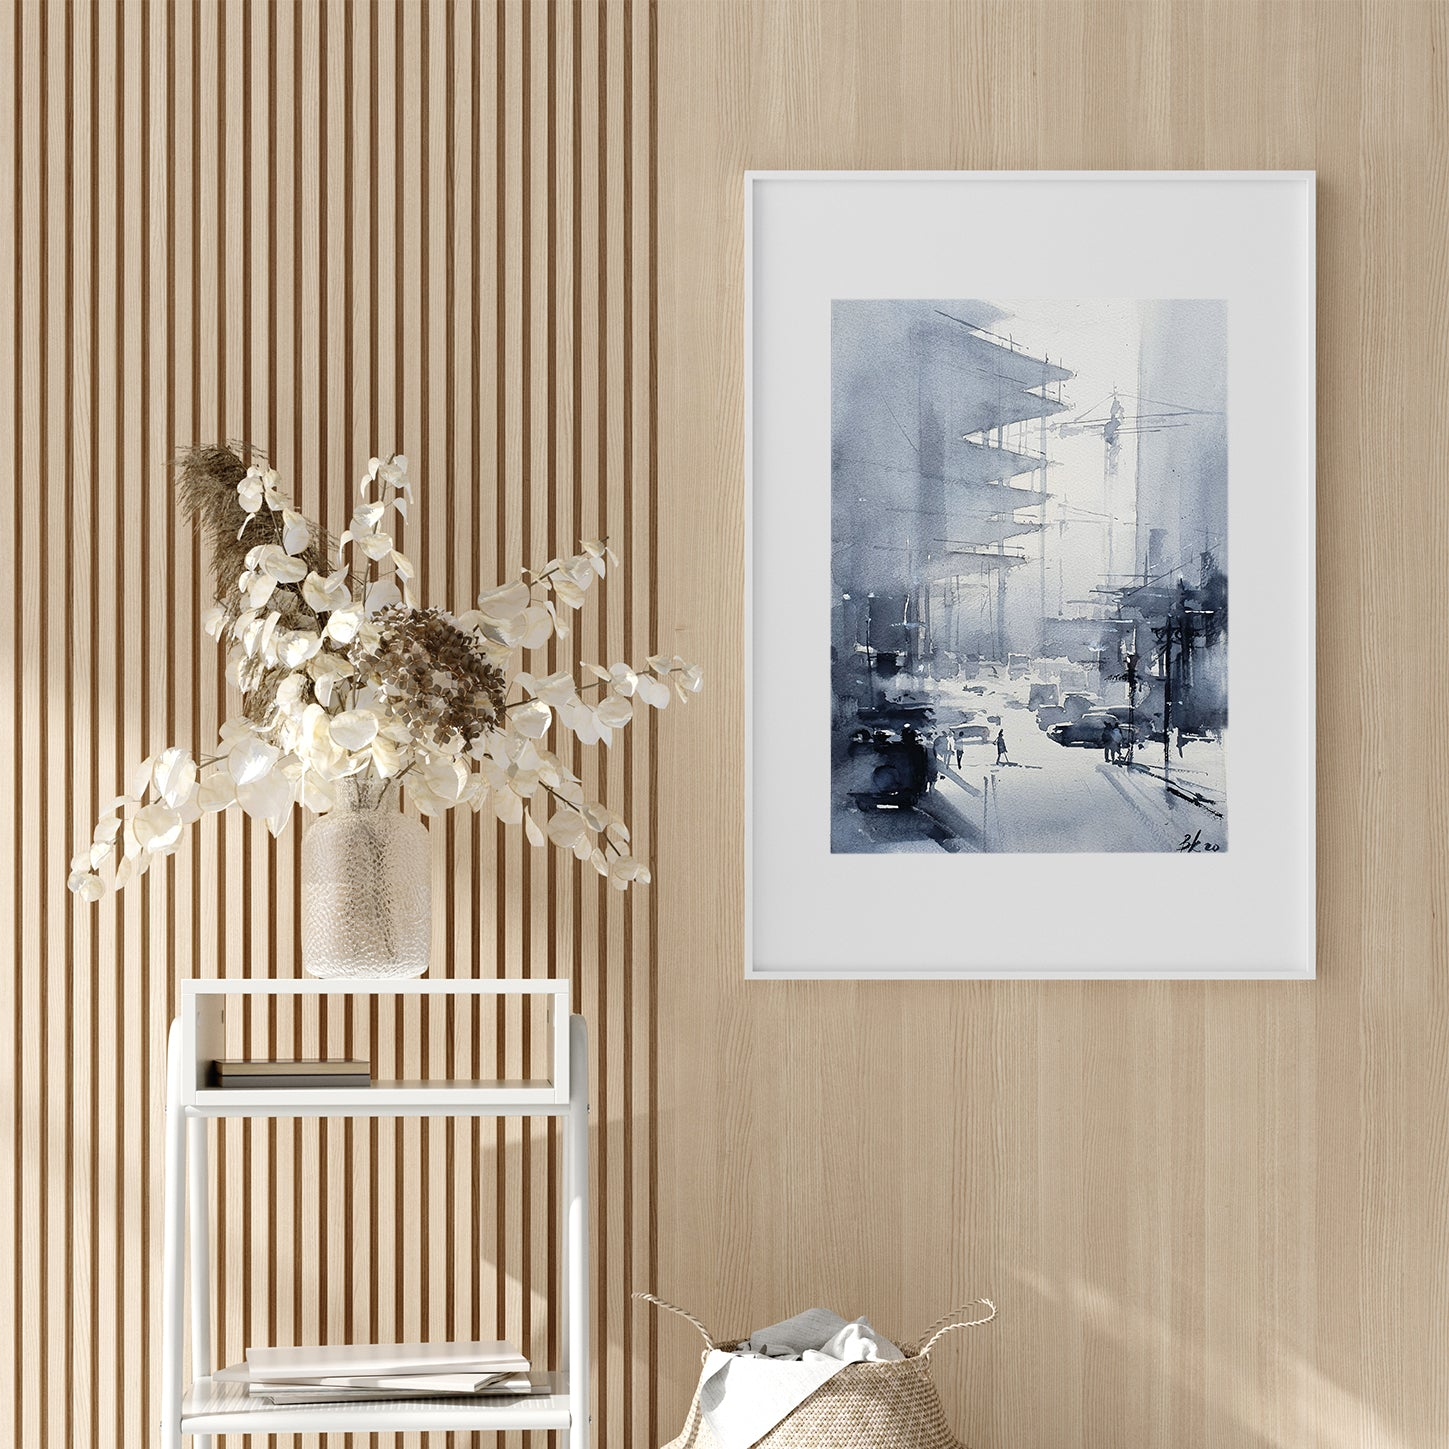 Abstract poster print with a city street, originally a watercolour painted artwork by Vera Kolgashkina, on hallway